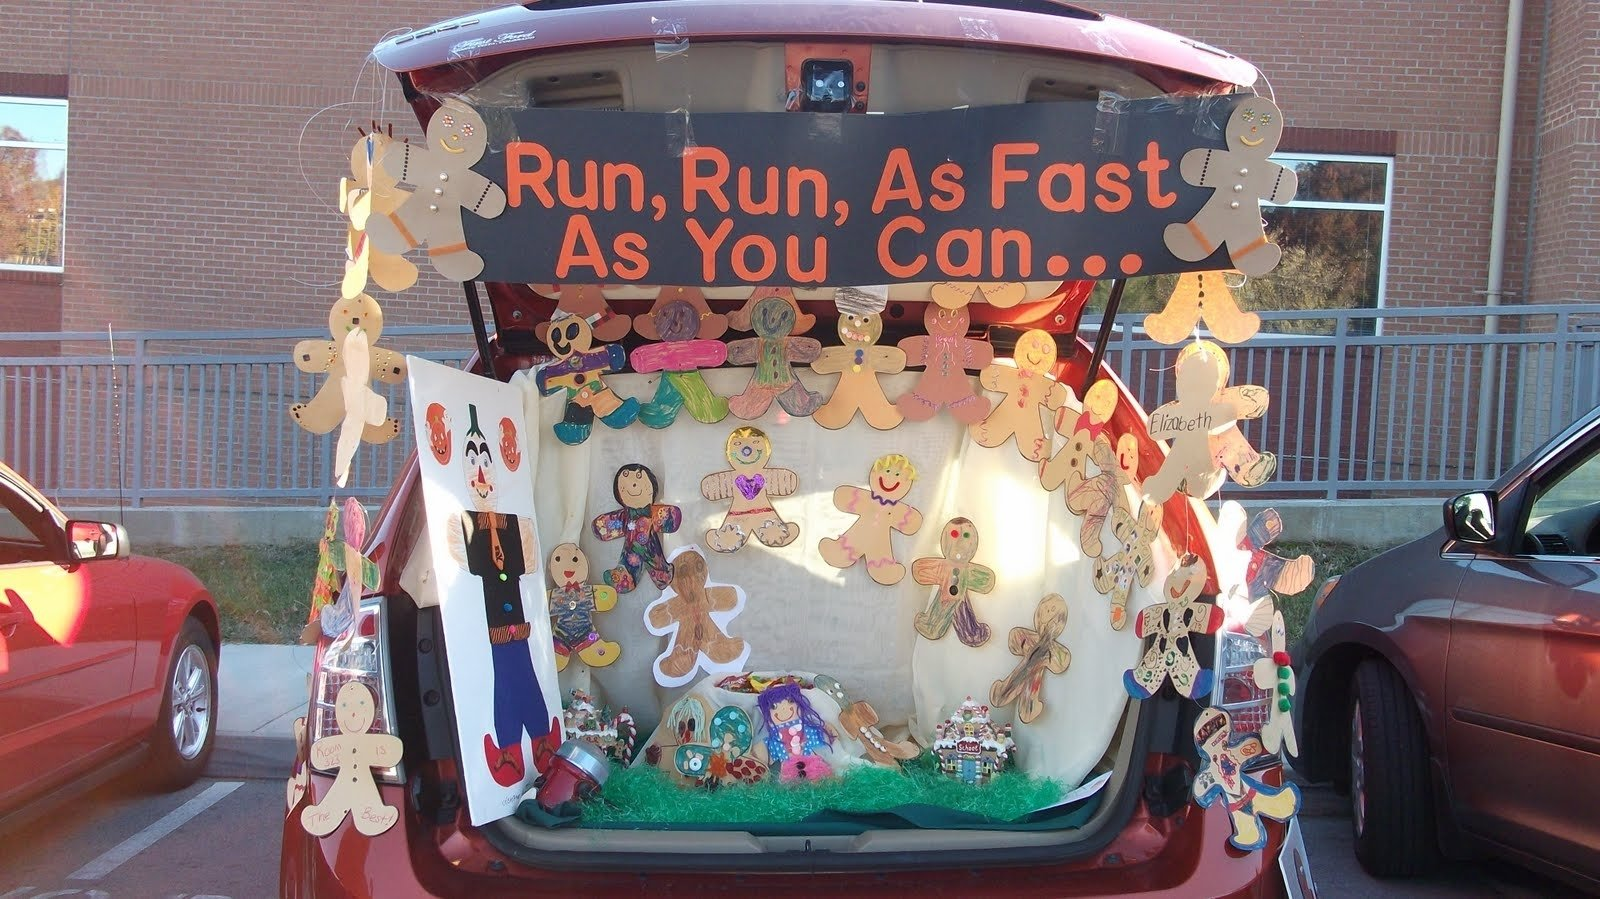 10 Nice Biblical Trunk Or Treat Ideas home interior elephant picture 1